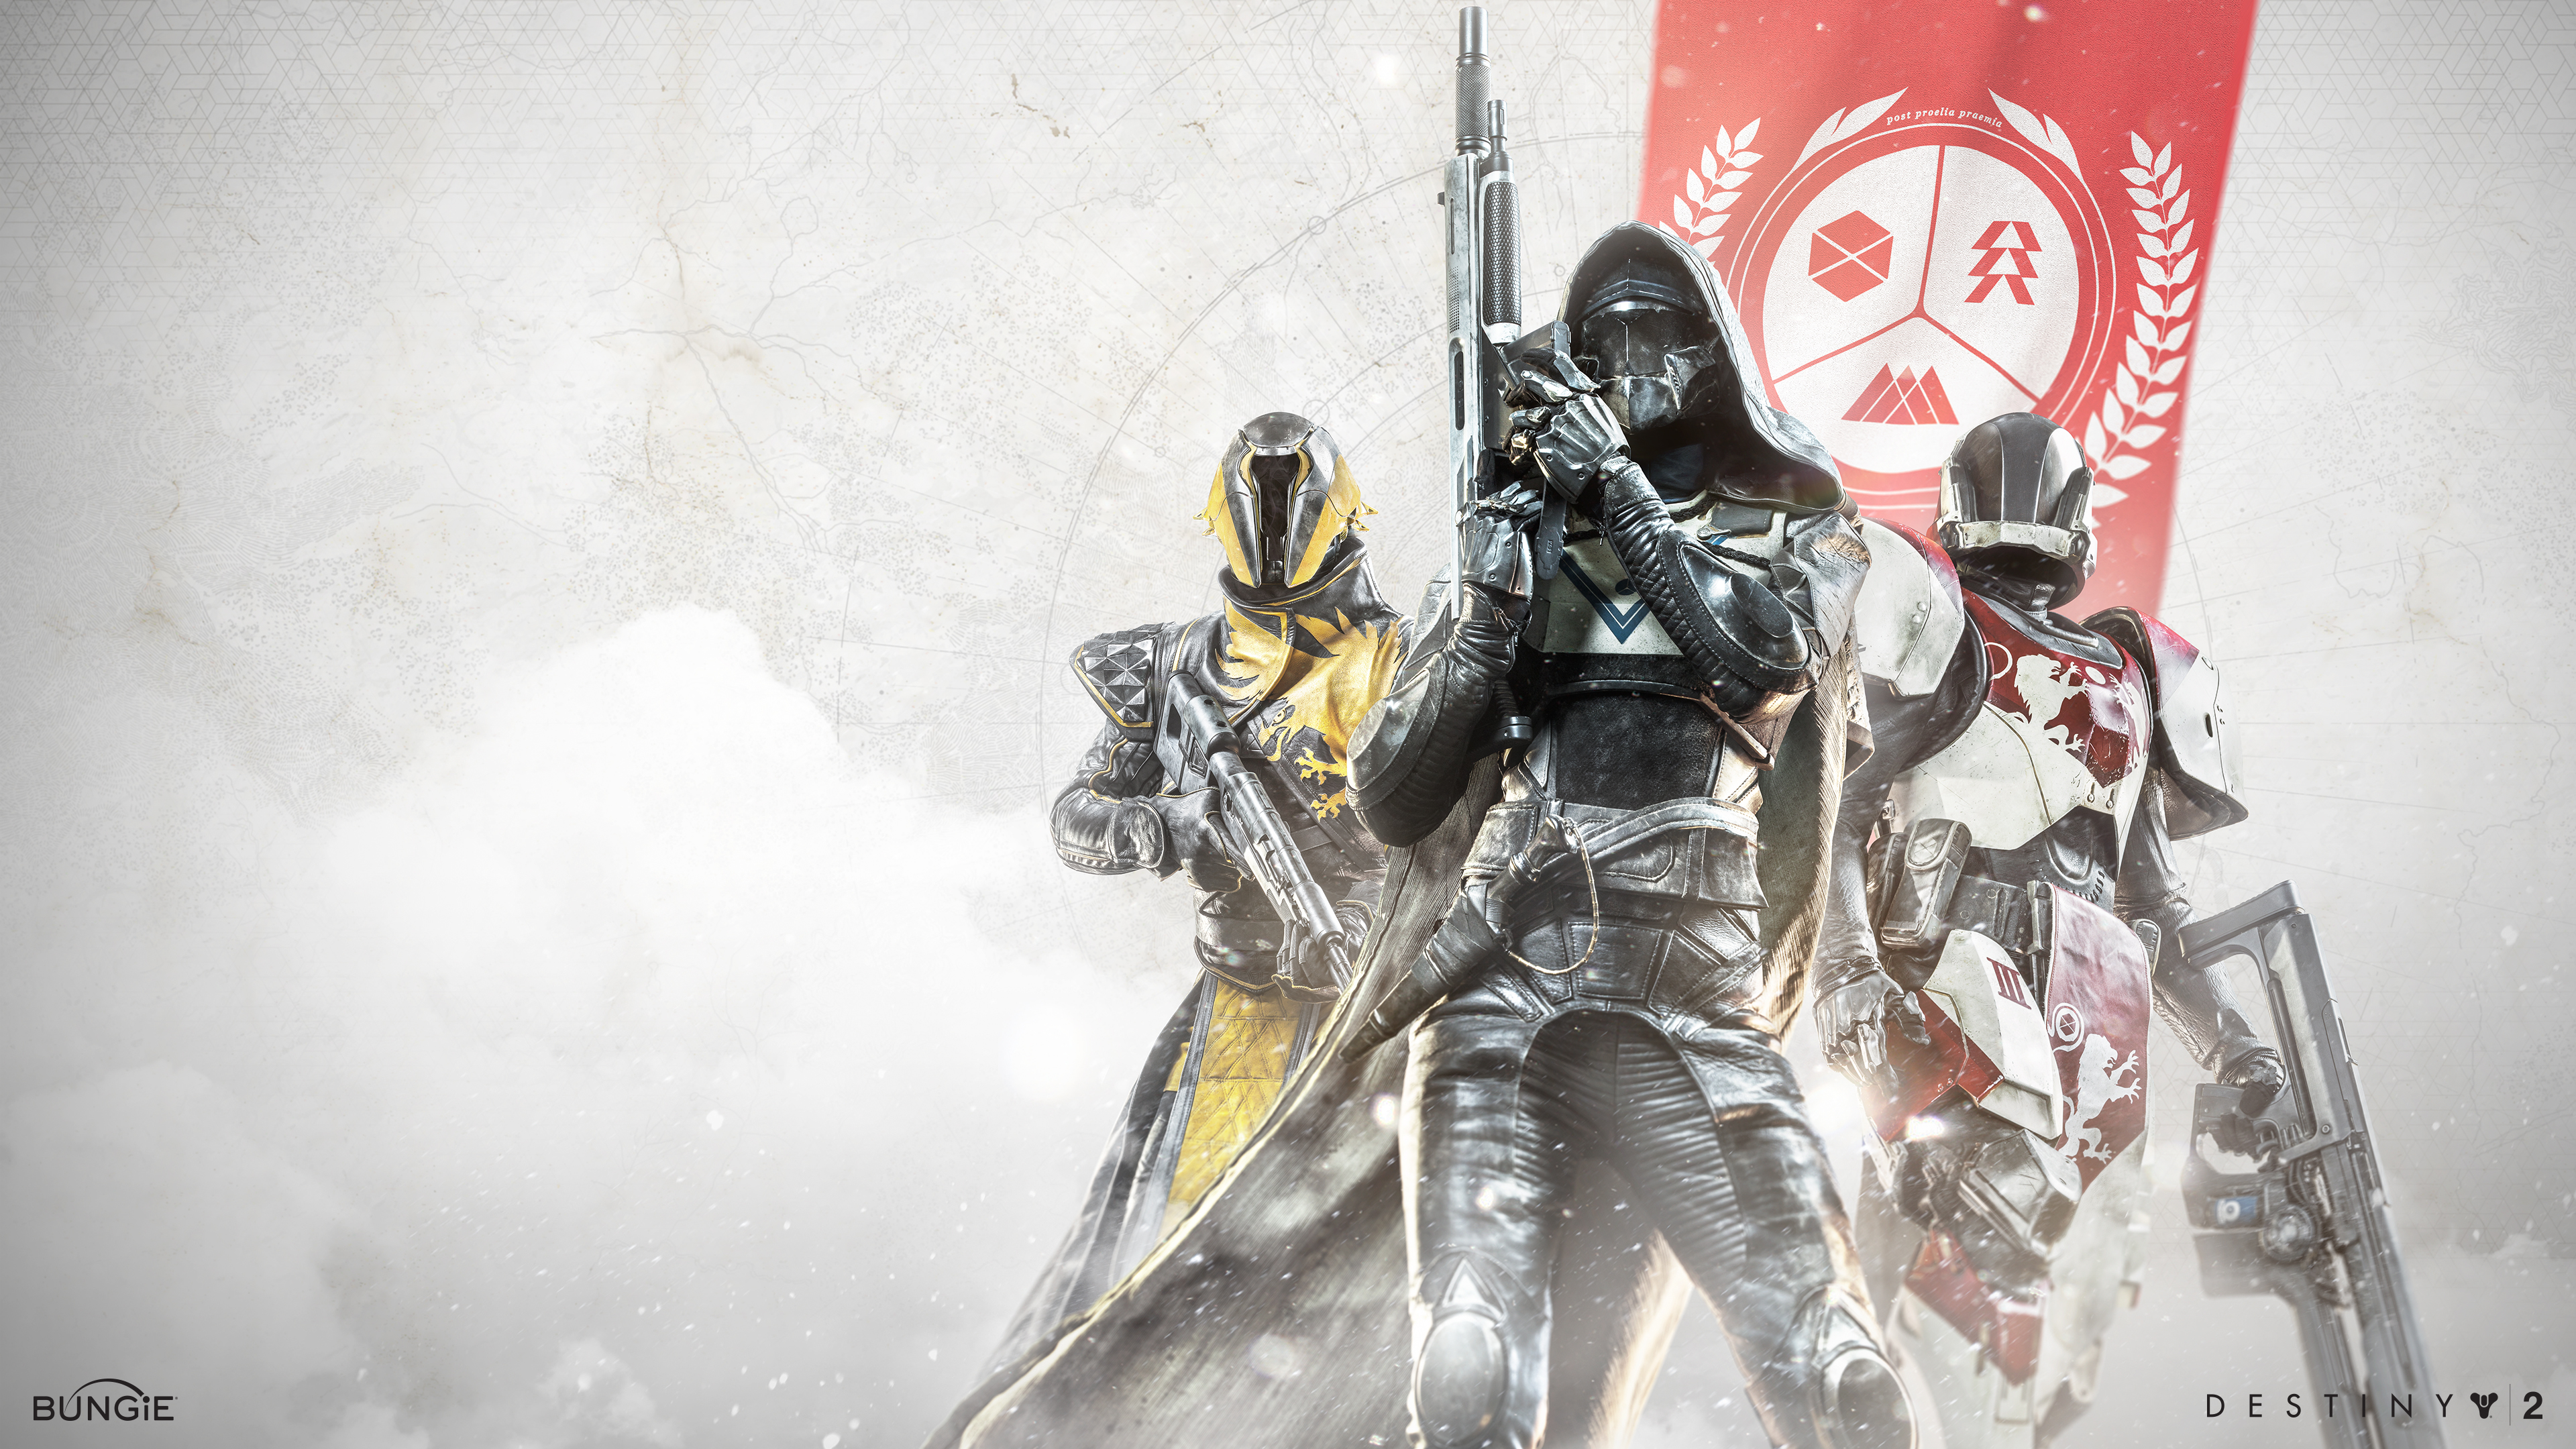 40+ Destiny 2 HD & 4k Wallpapers with Hunters, Titans & More from Bungie!